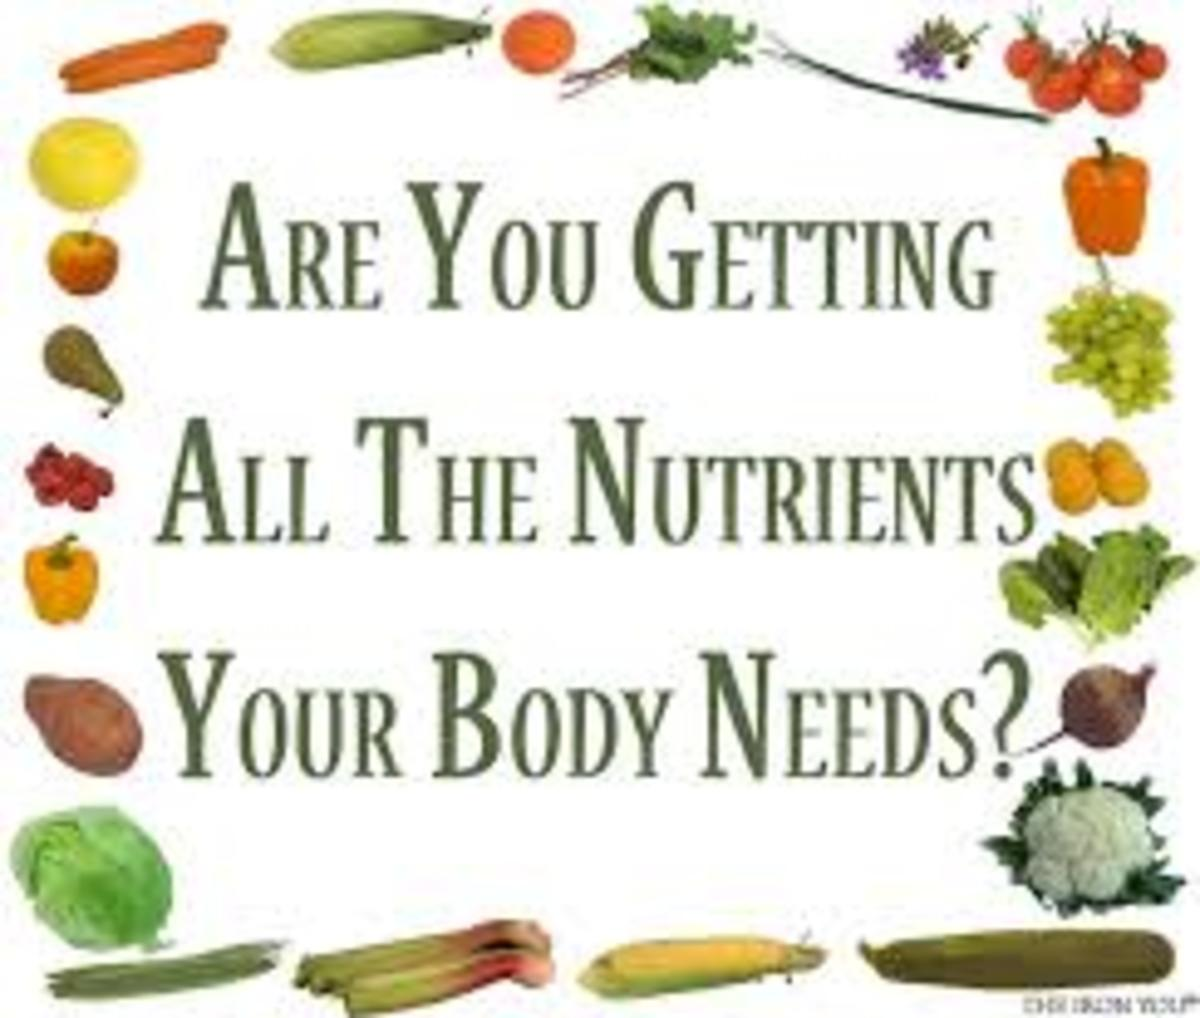 Eating a balanced diet is essential for the efficient functioning of the body.